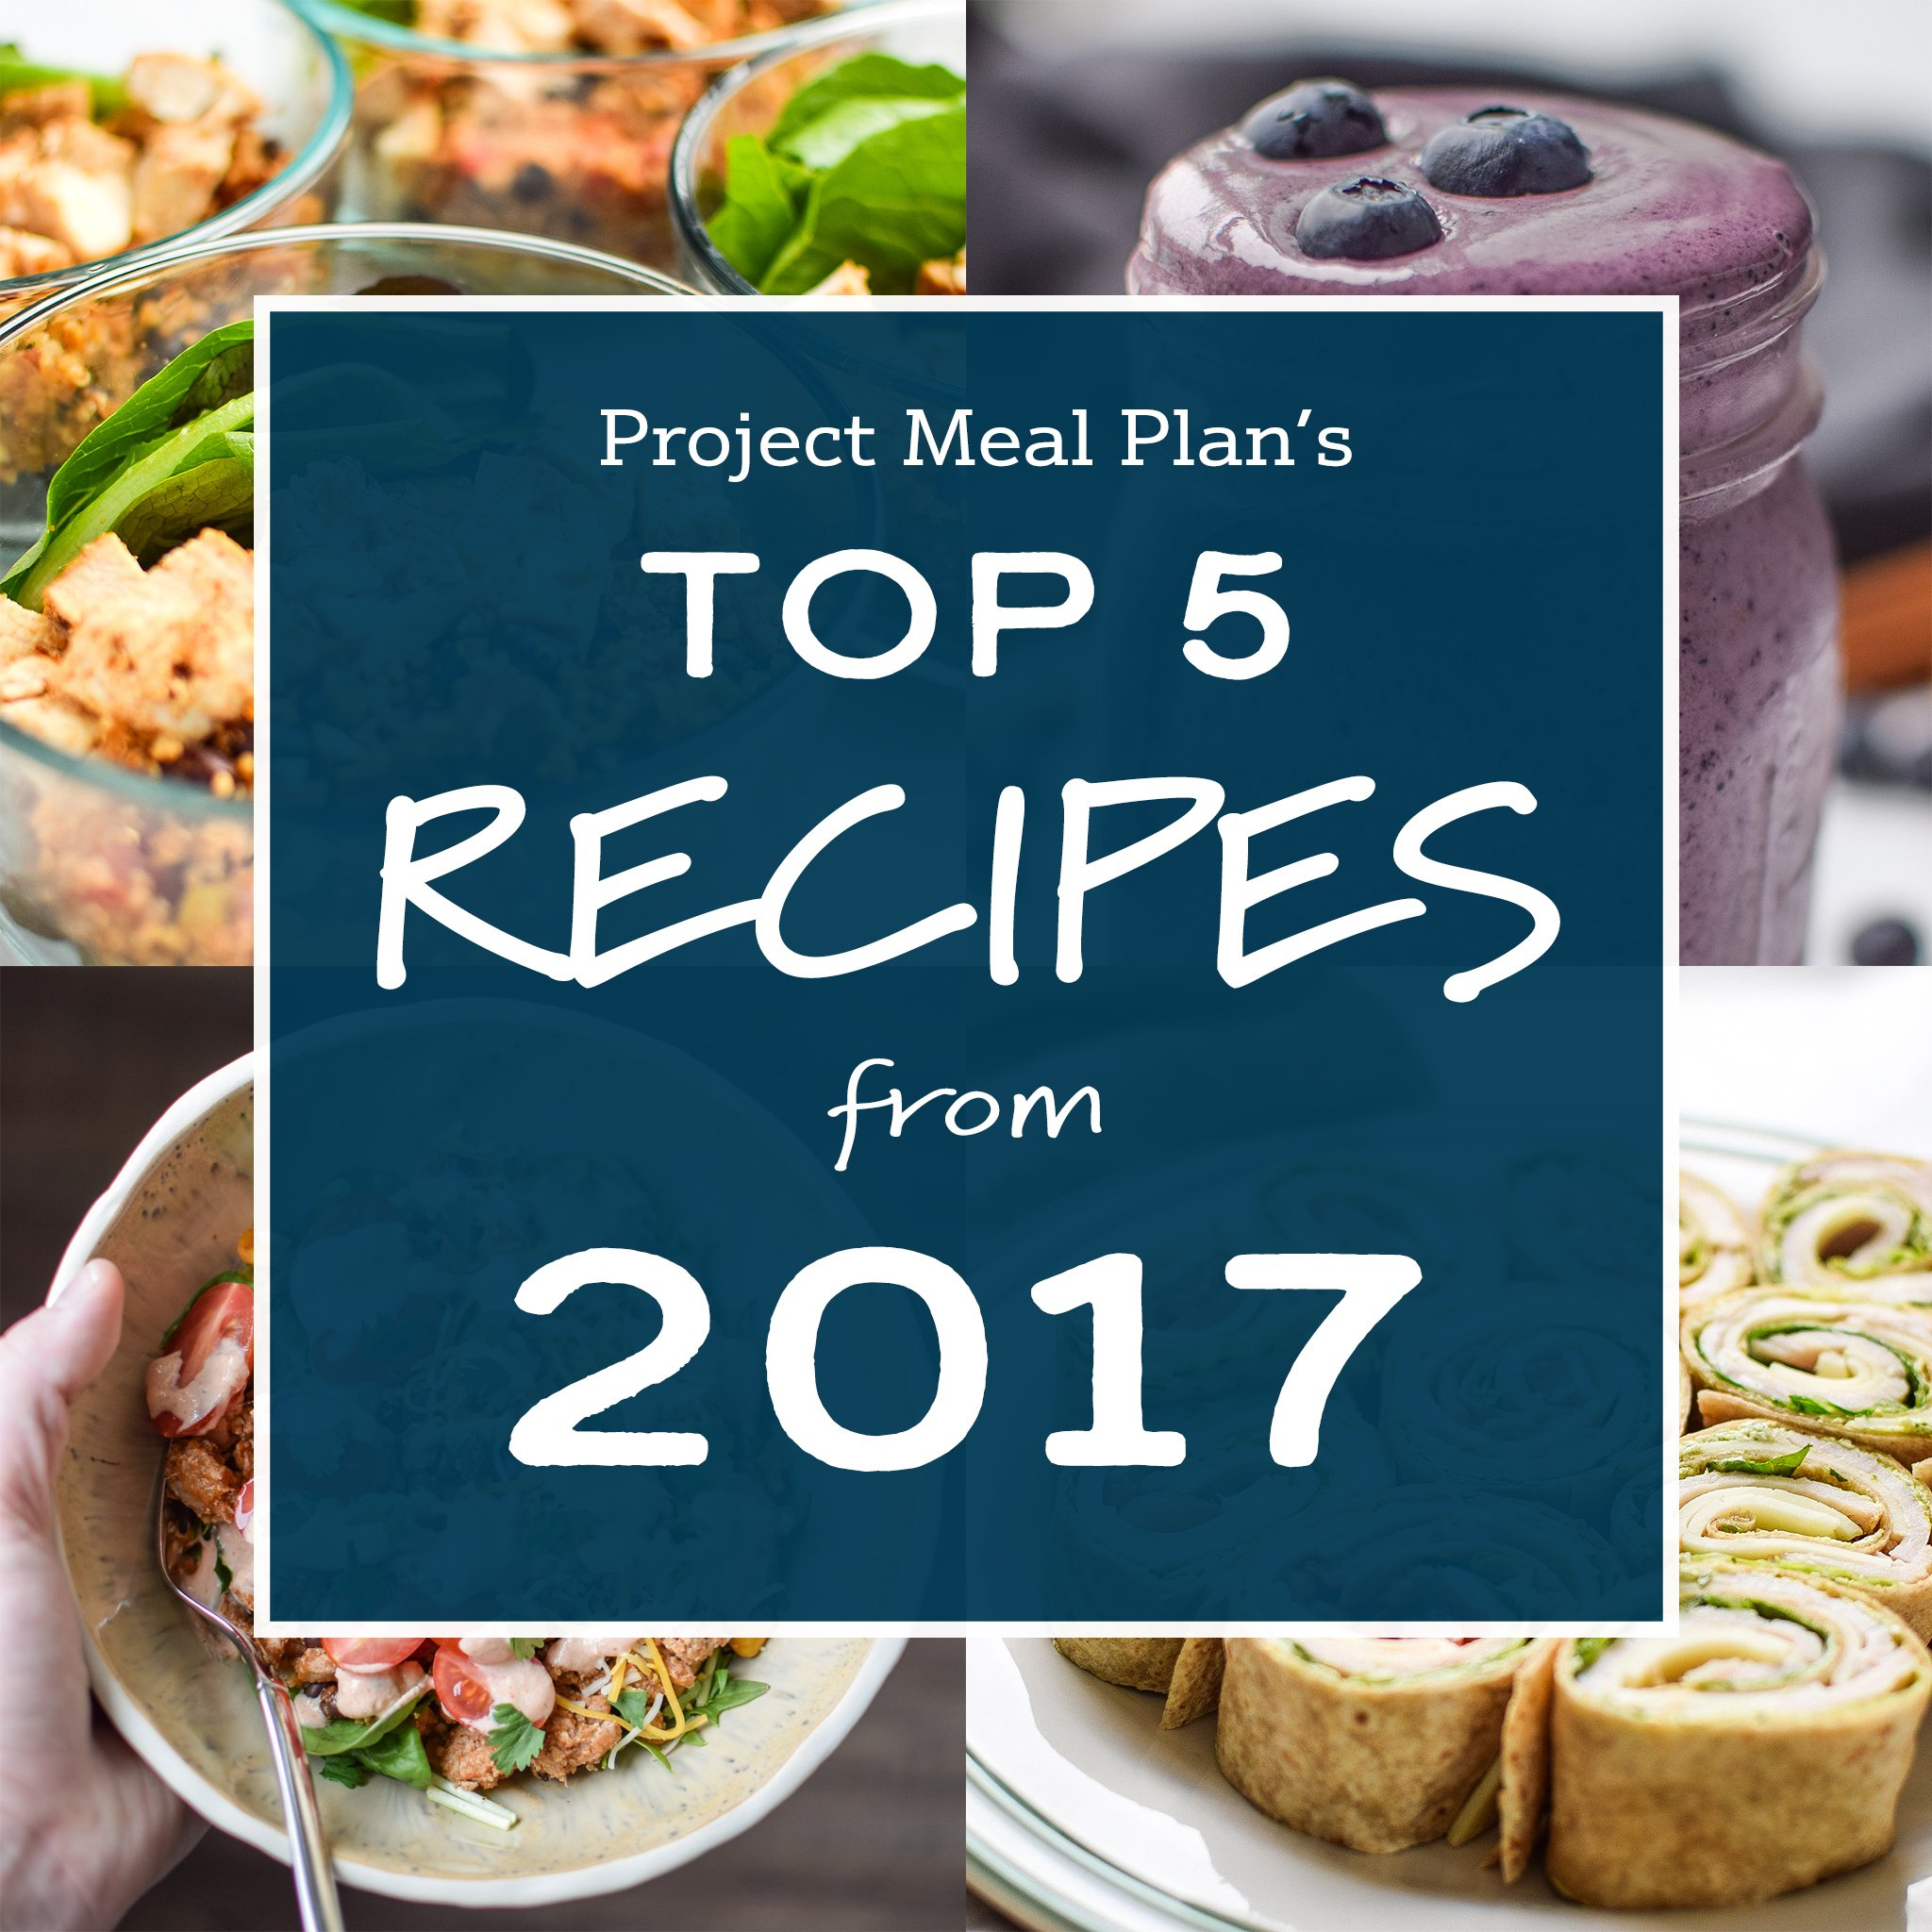 title and cover photo for the top 5 recipes of 2017